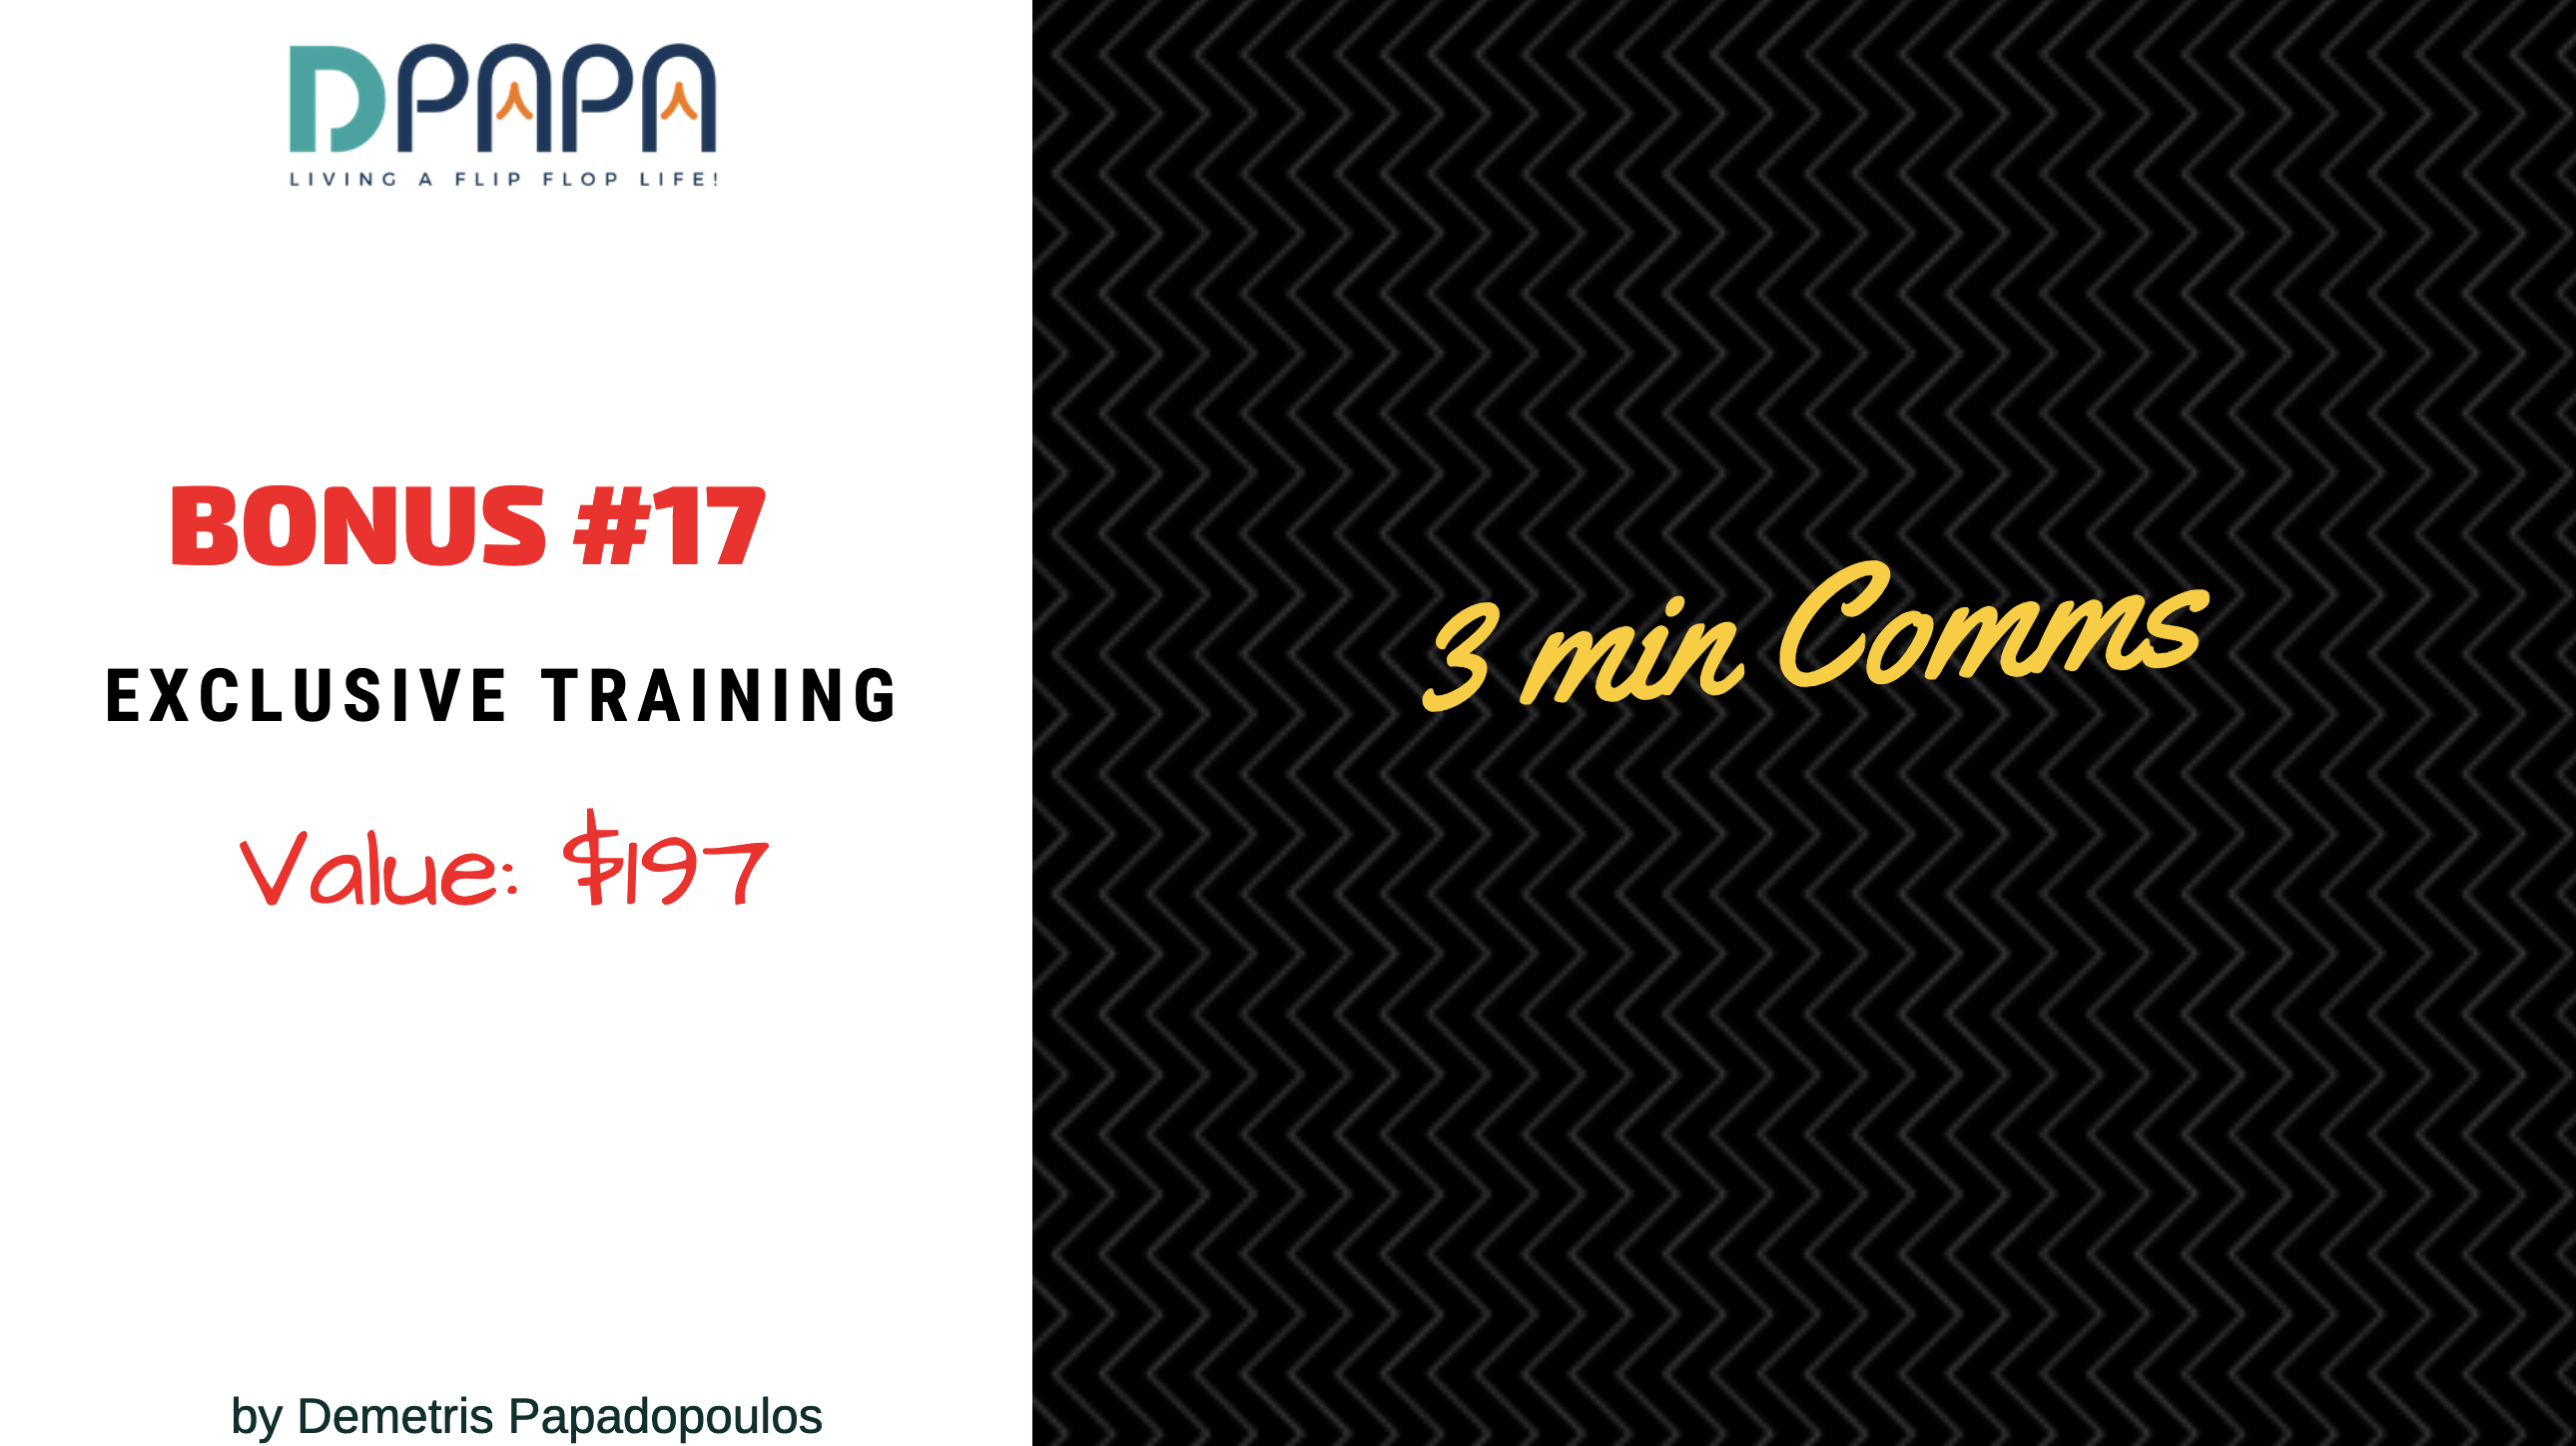 How To Combine CPA Affiliate Marketing & FB ads to Turn $5 into $163 in 30 min 23